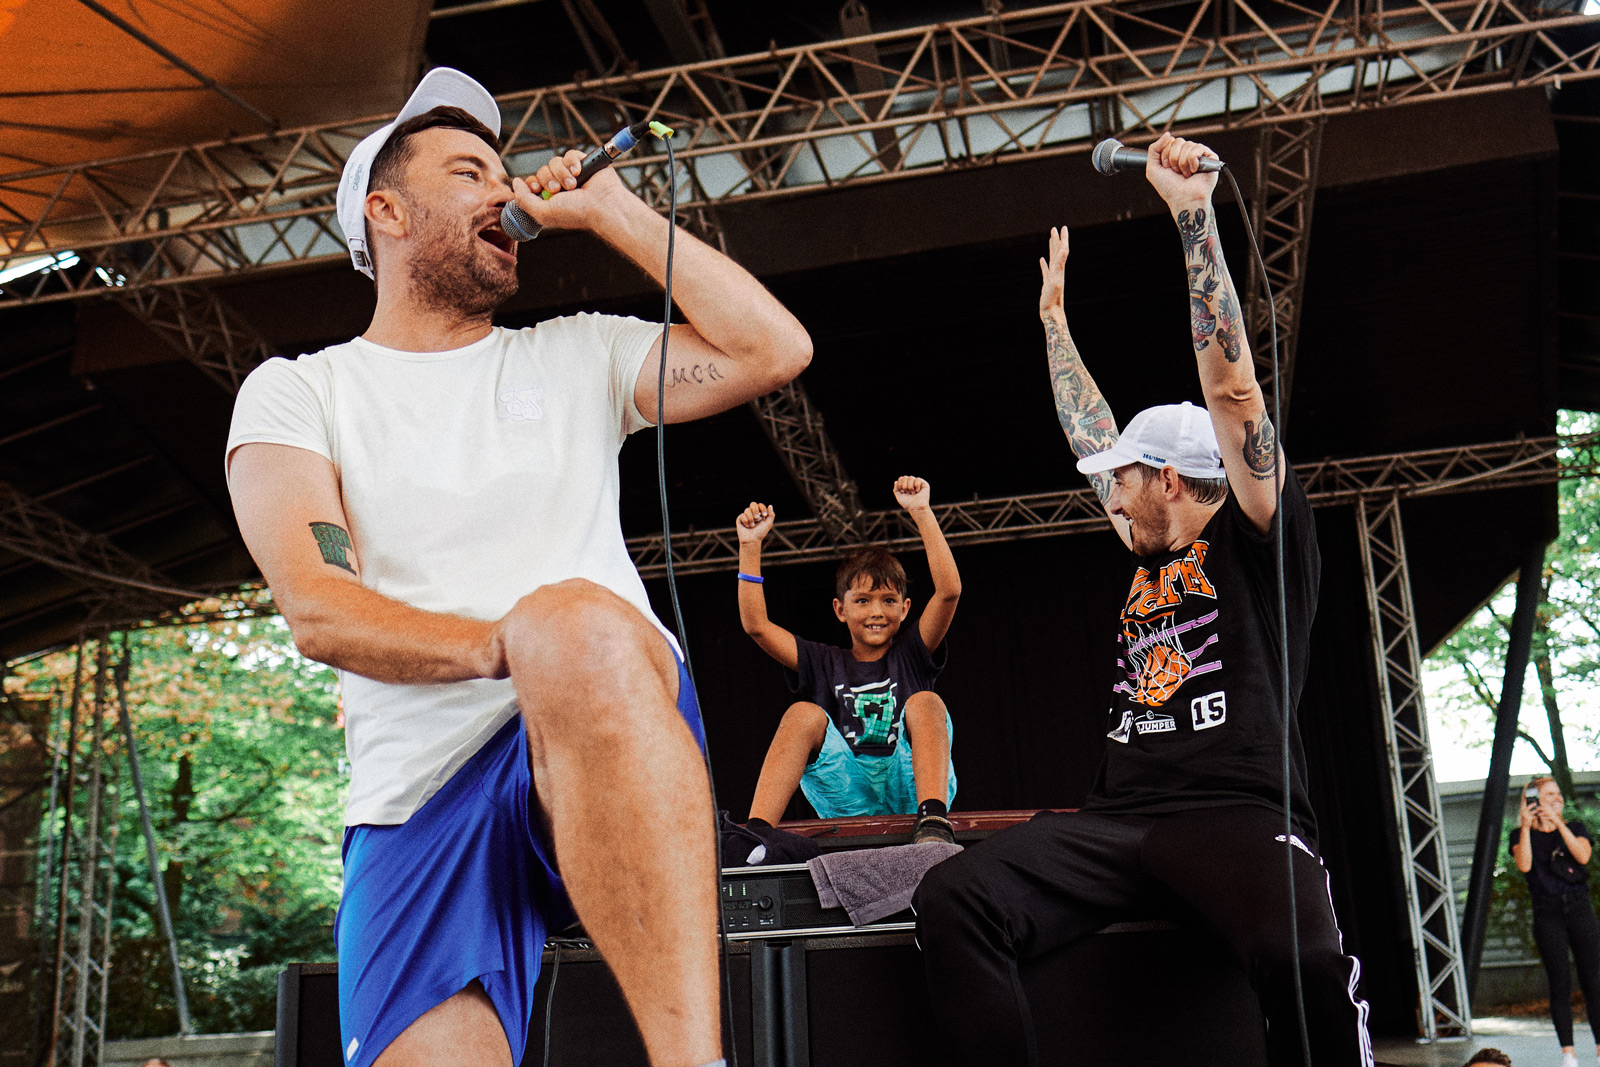 DAVID LEMANSKI CASPER AND MARTERIA